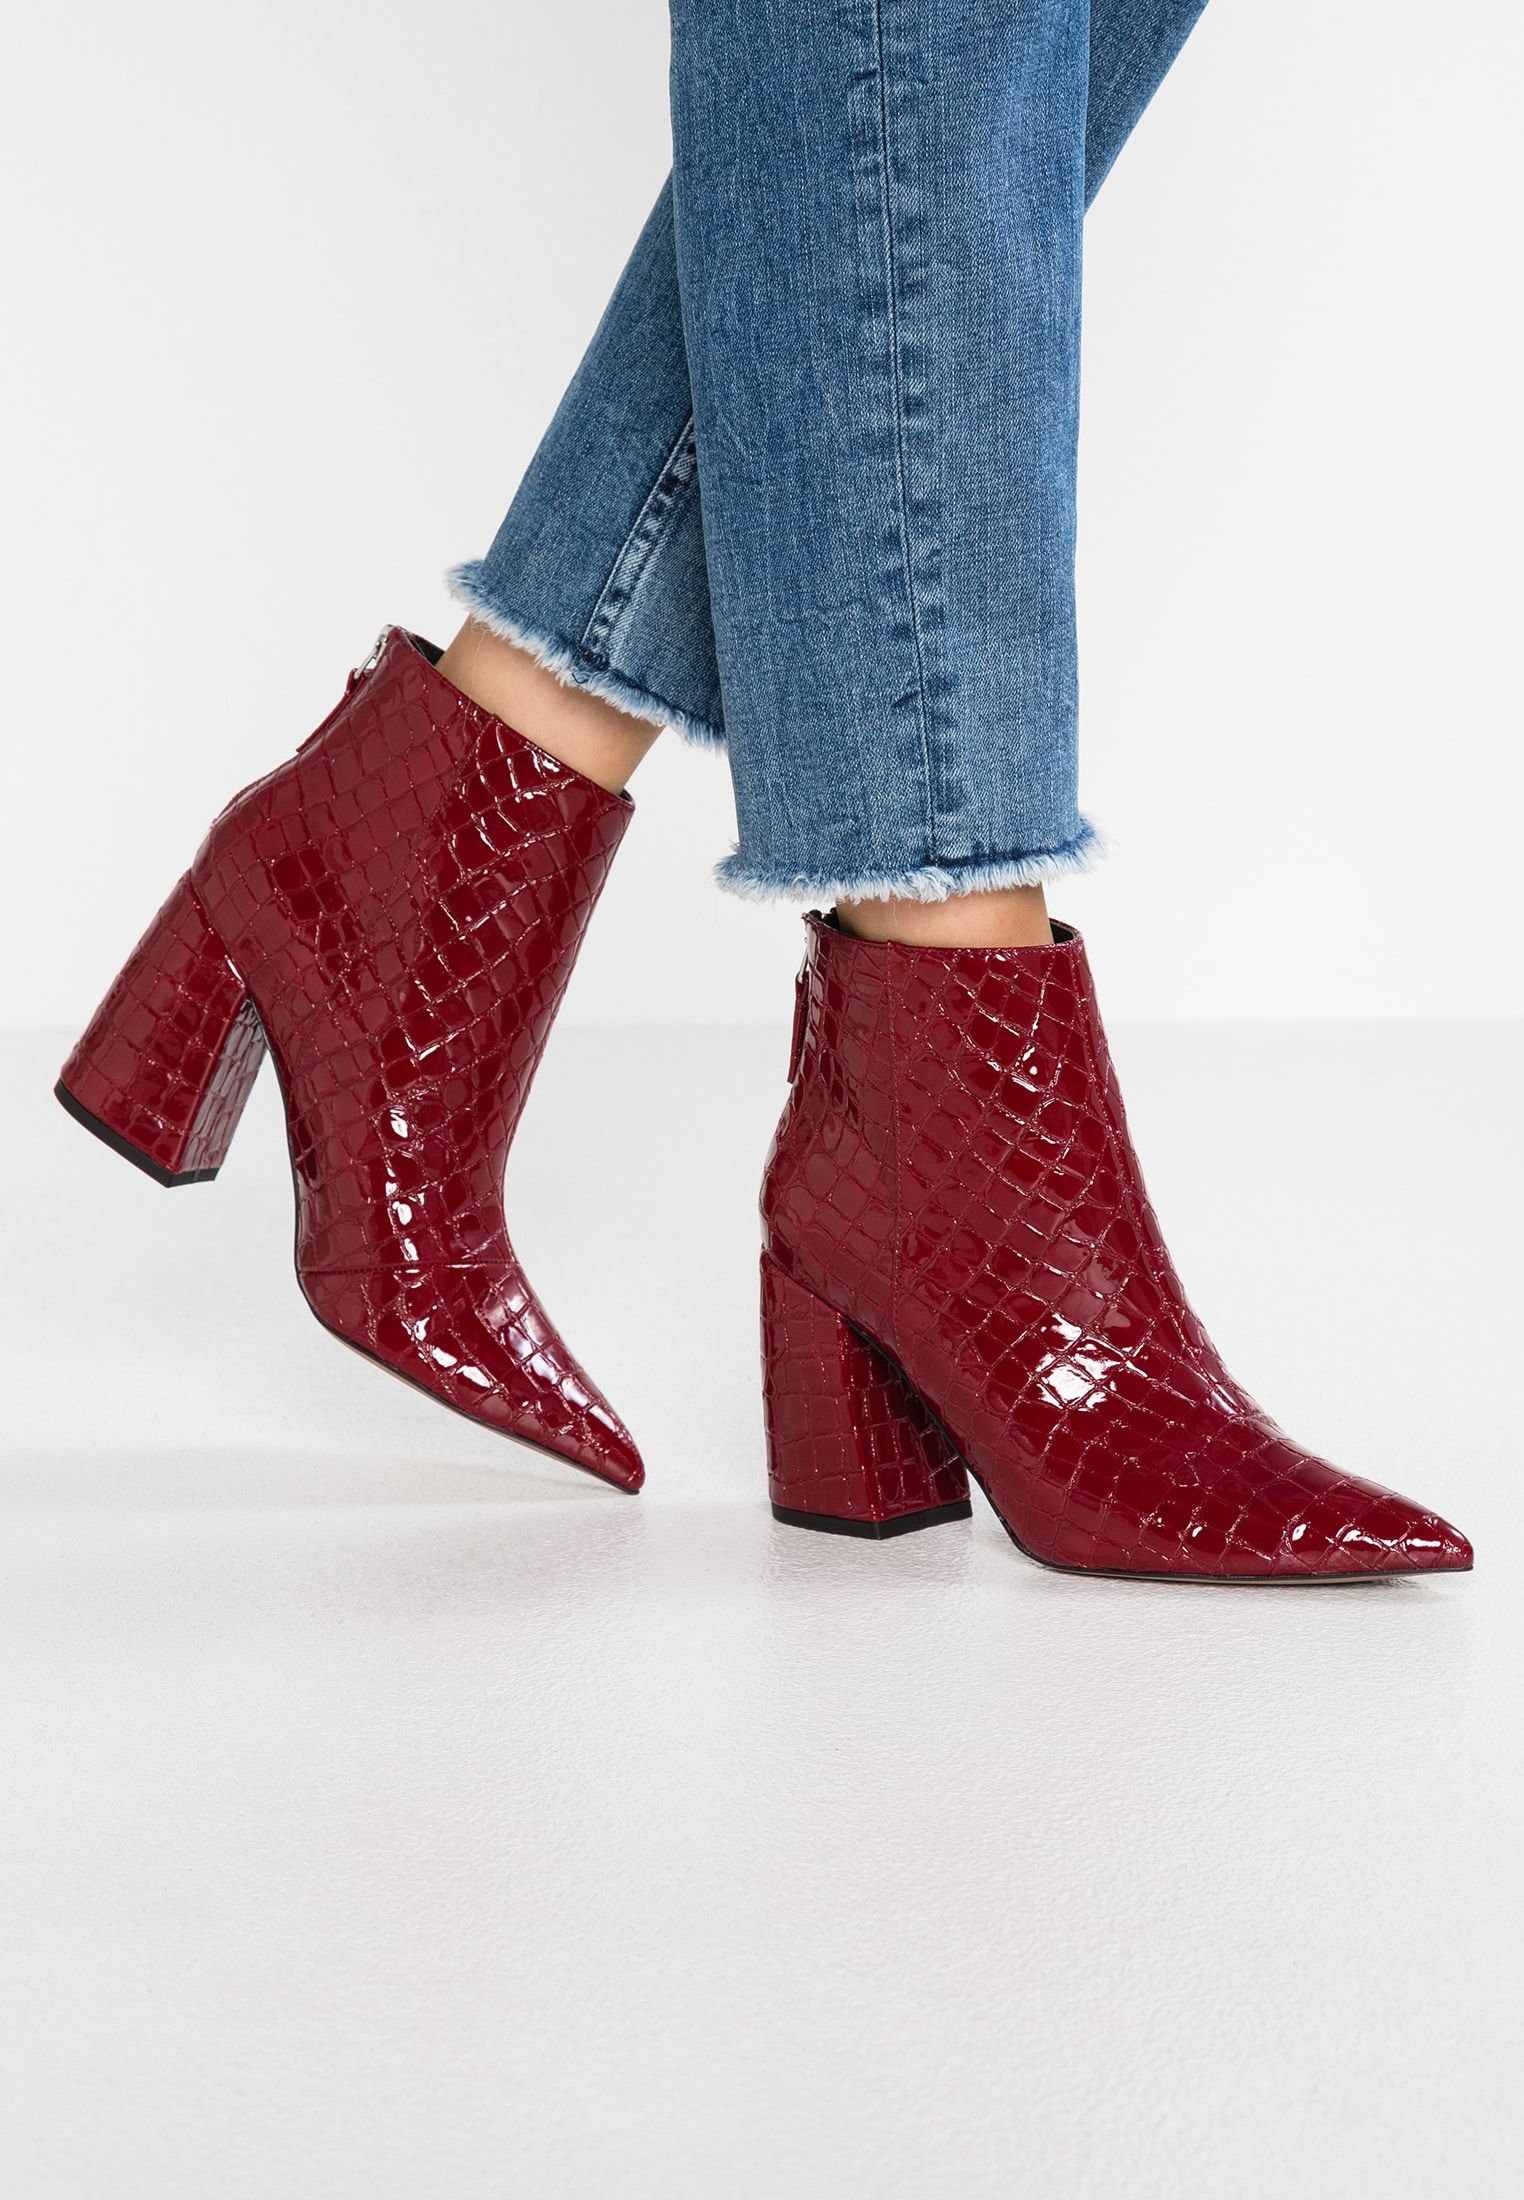 53b5148da52 Topshop HOUSTON - High Heel Stiefelette - red - Zalando.de